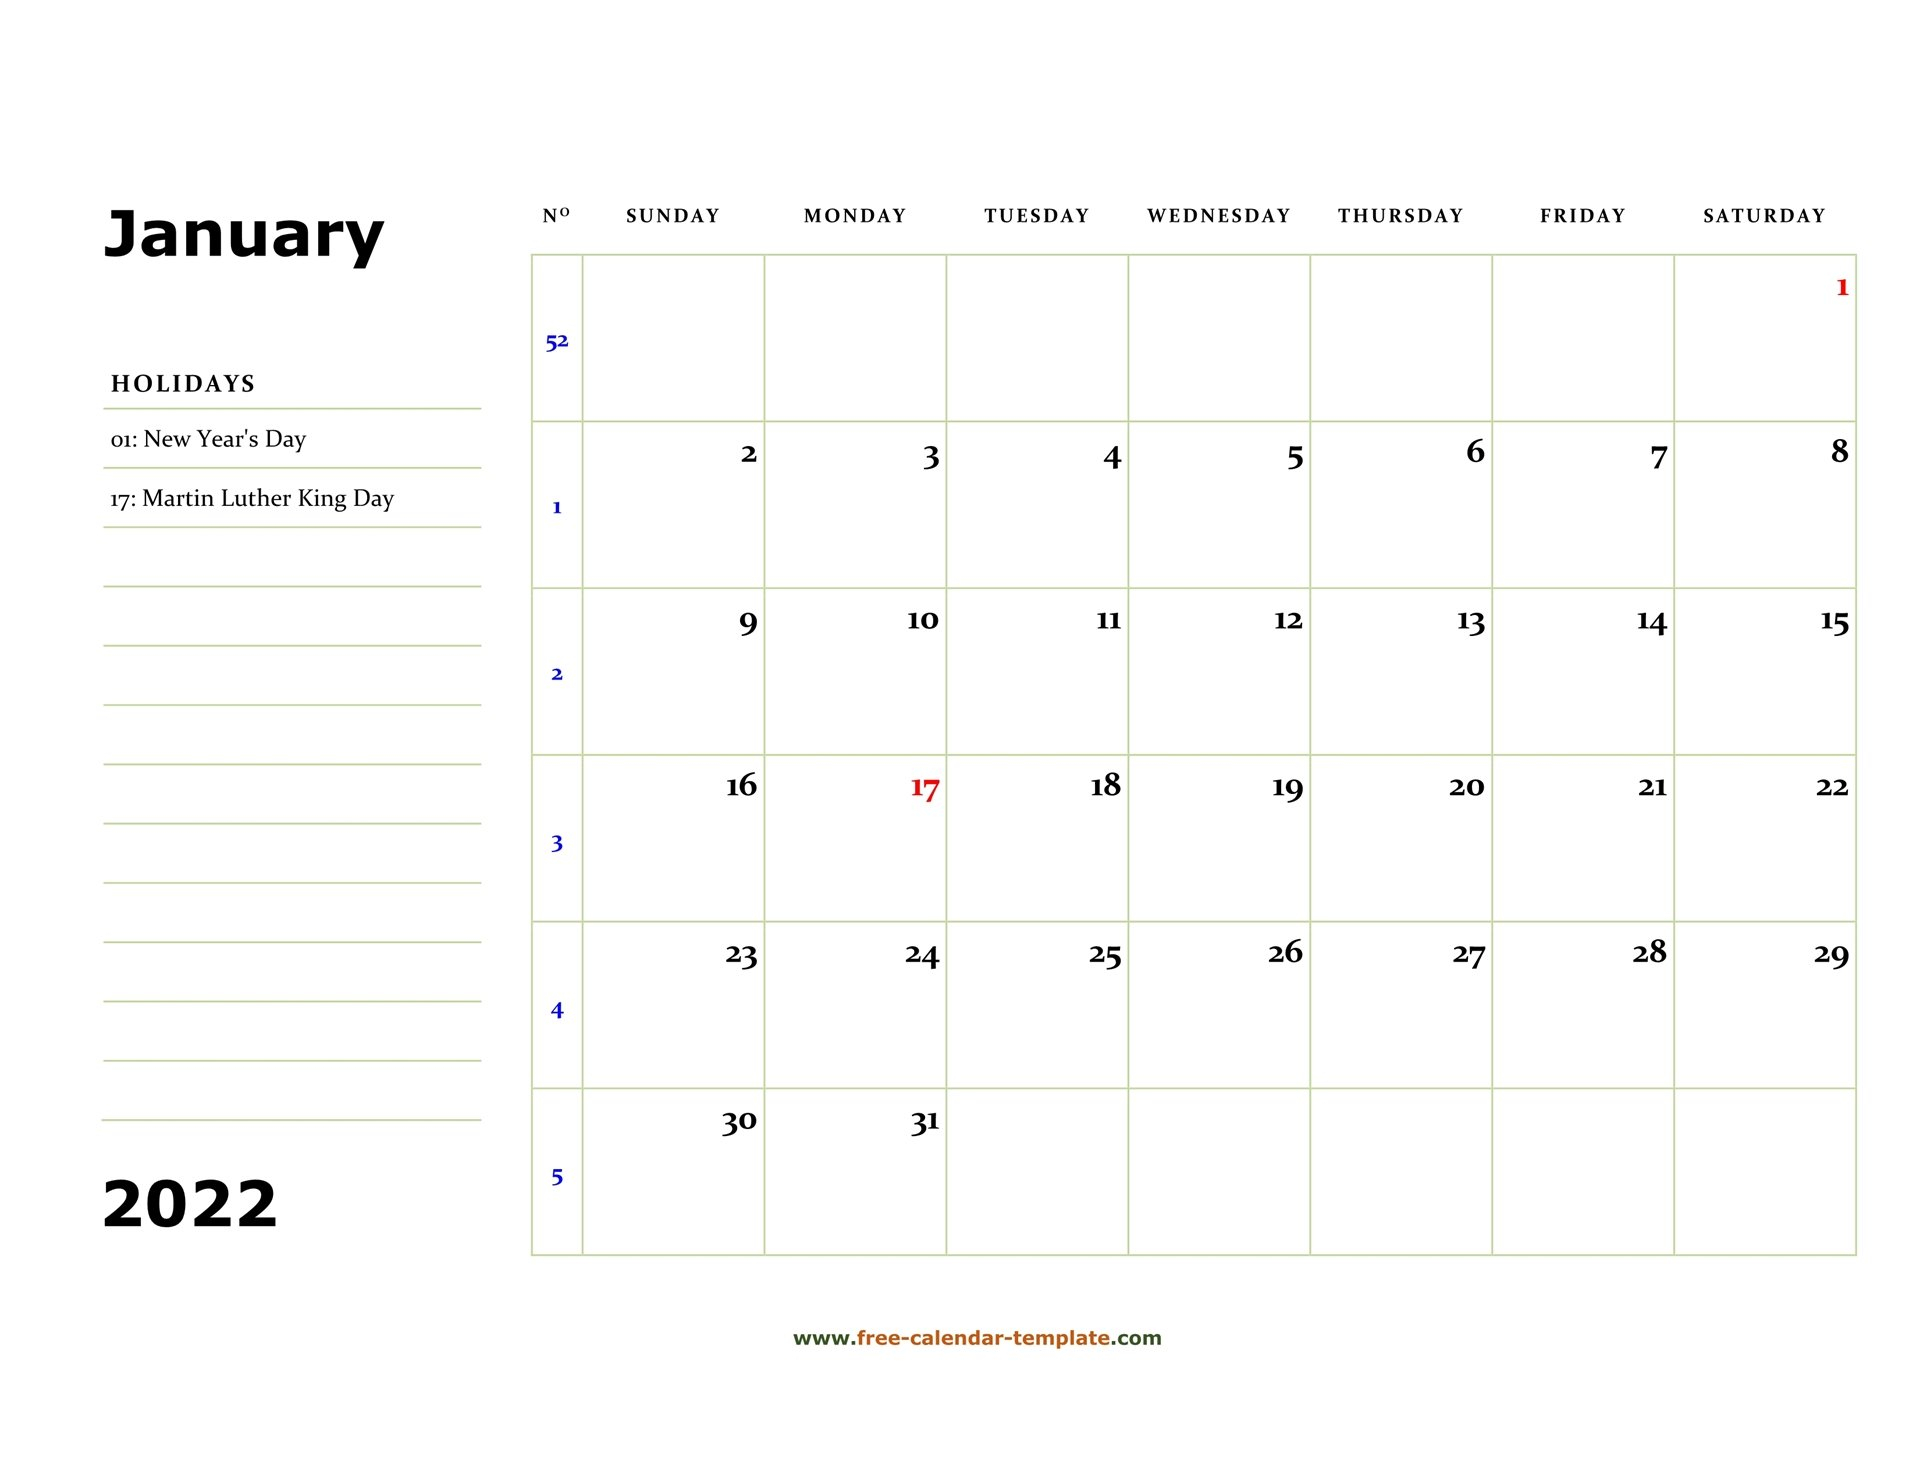 January 2022 Free Calendar Tempplate   Free-Calendar throughout January 2022 Free Month At A Glance Planner.pdf Photo